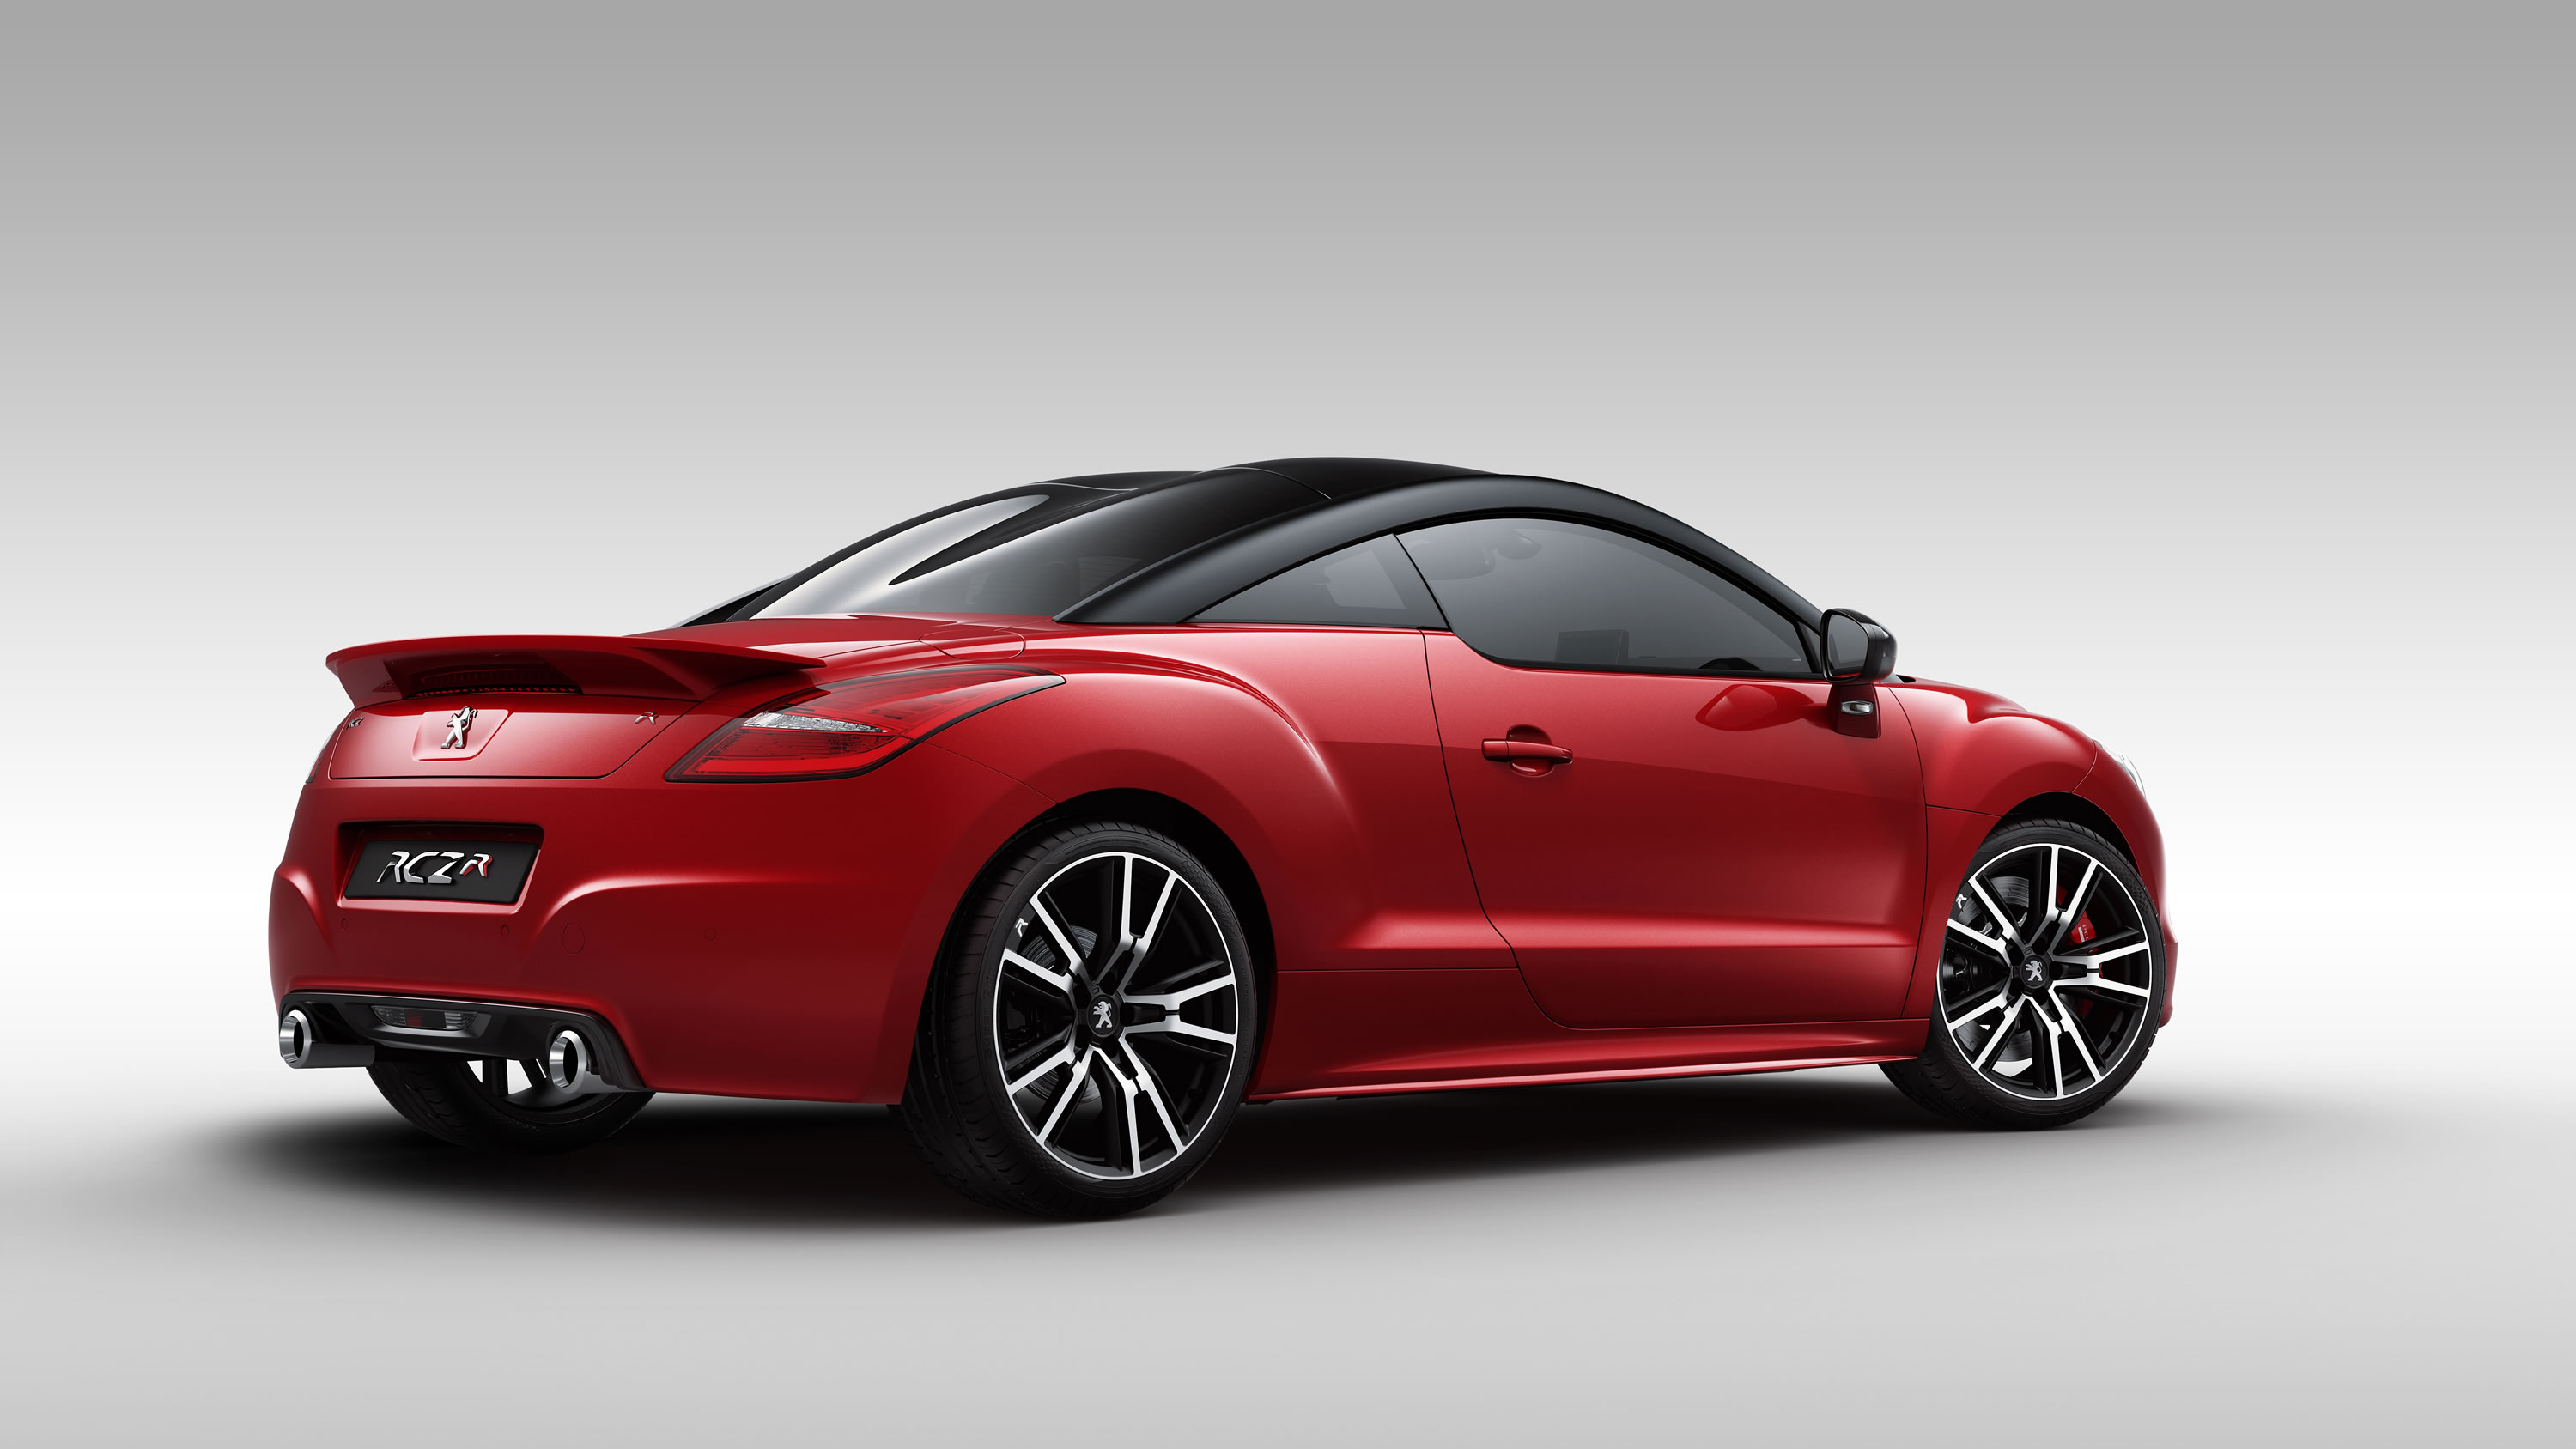 2014 peugeot rcz r photos specs and review rs. Black Bedroom Furniture Sets. Home Design Ideas